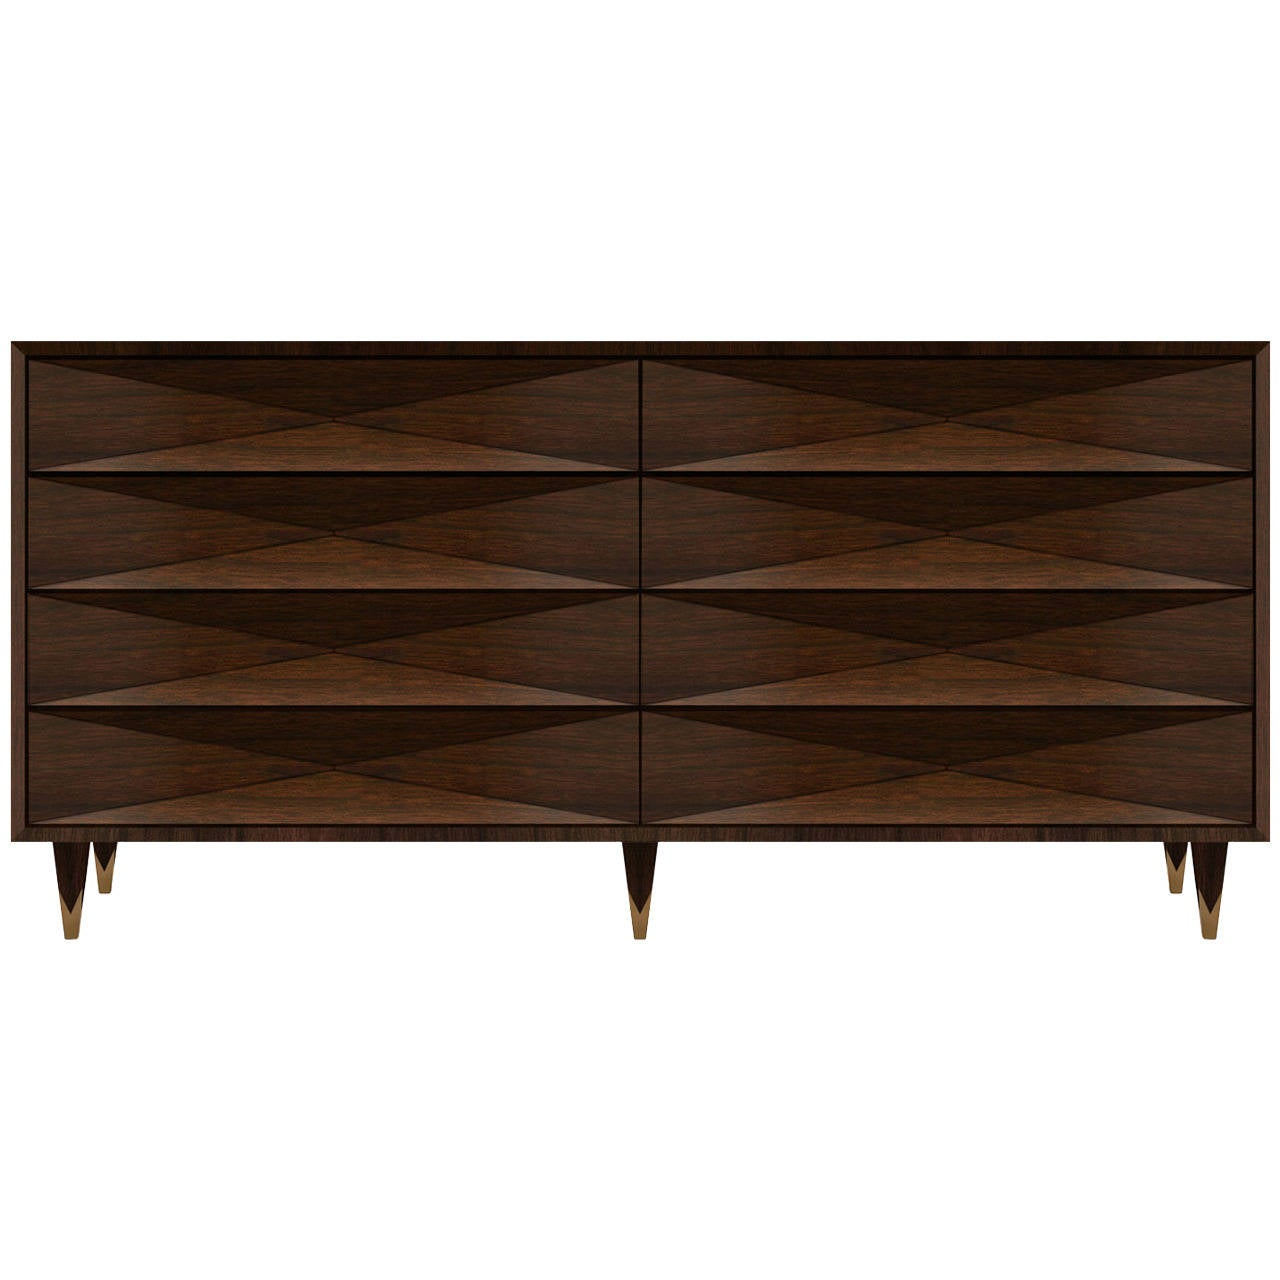 Faceted Walnut Dresser or Credenza